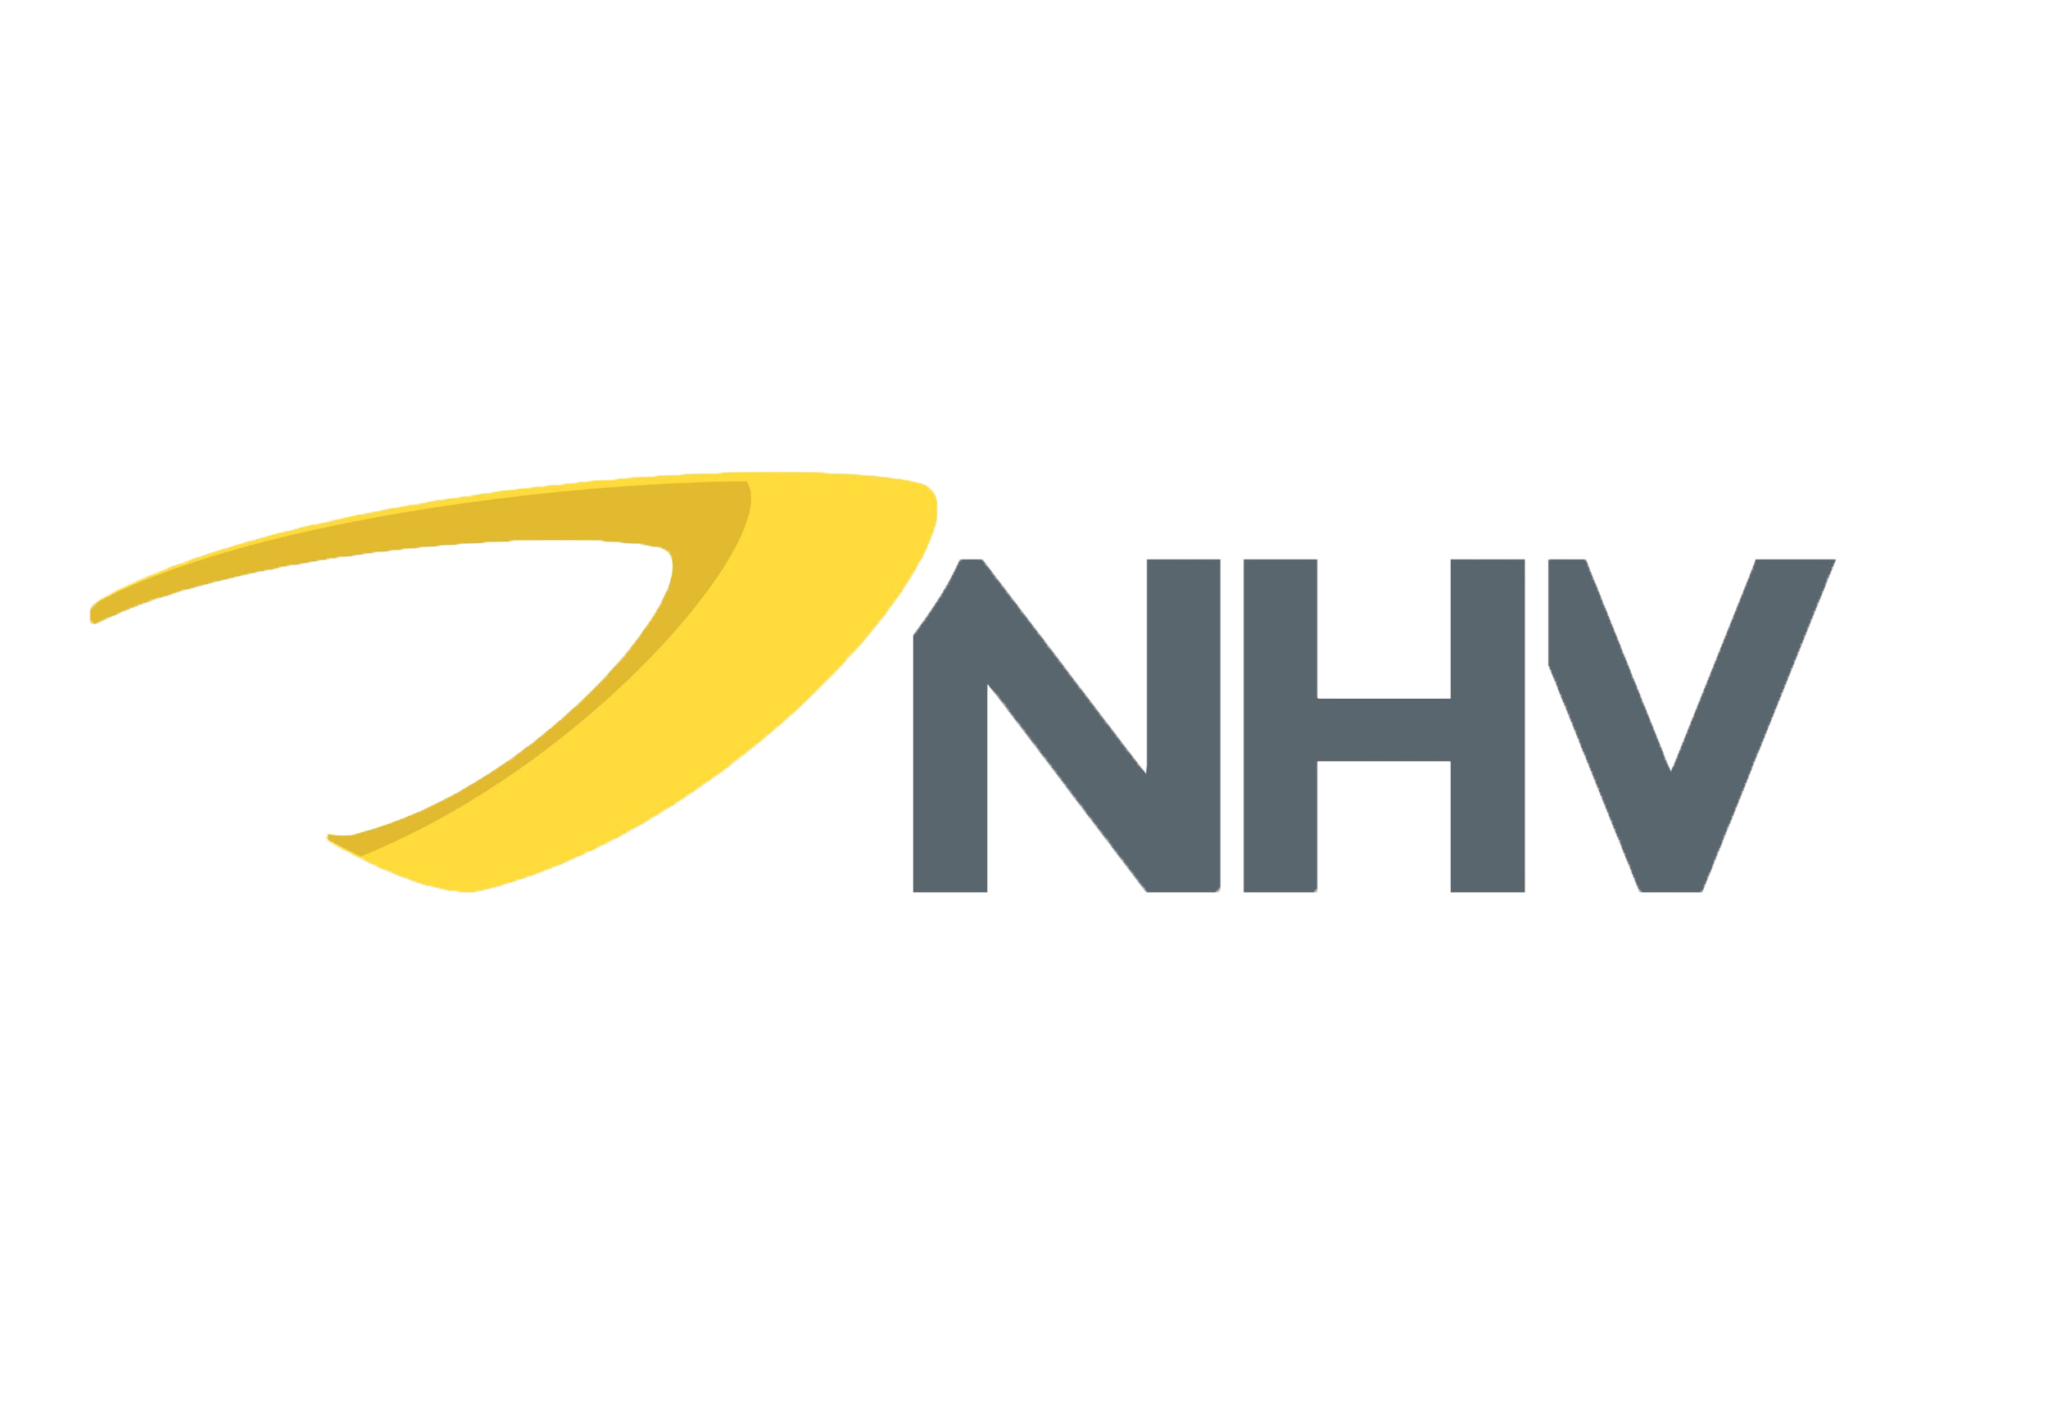 nhv-helicopters-logo